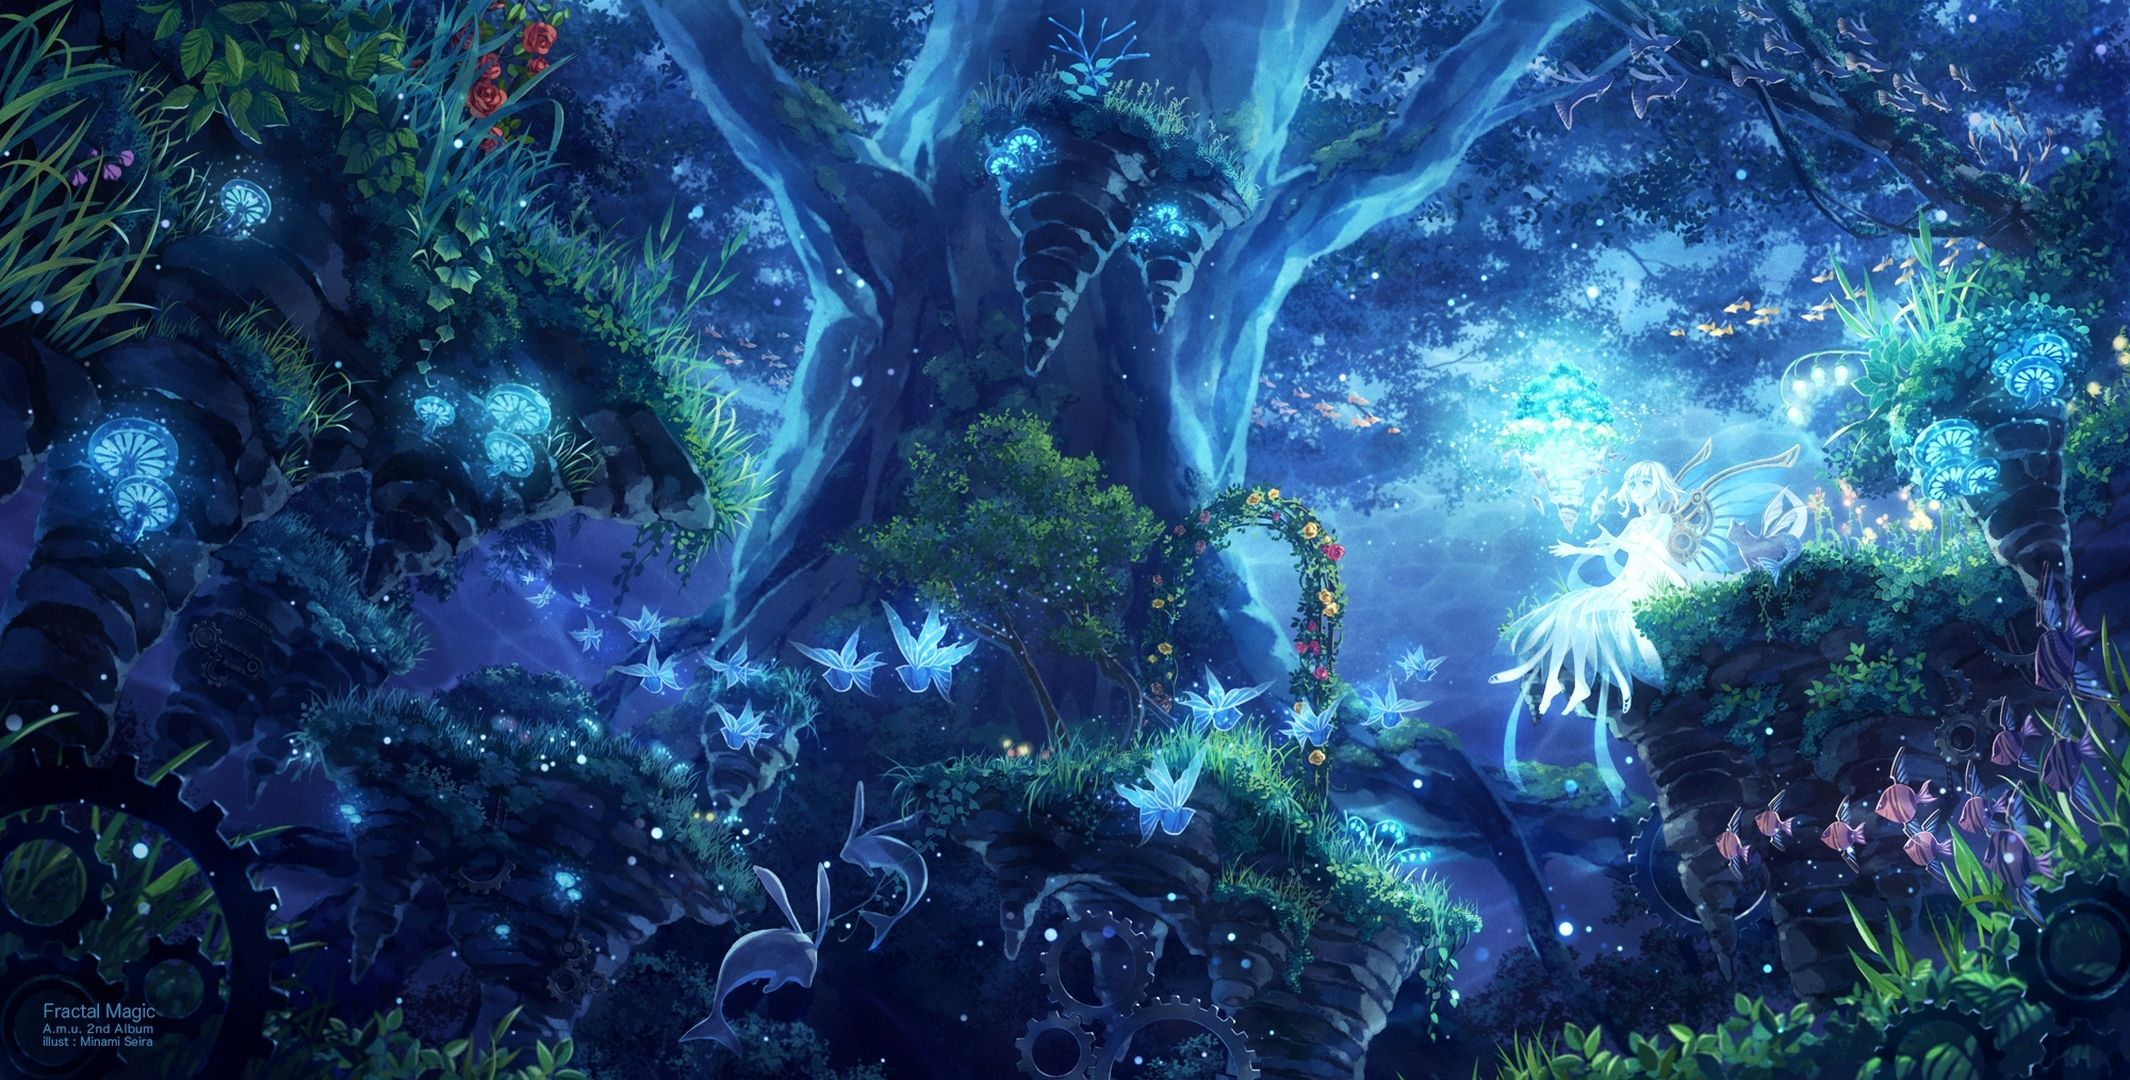 Anime Scenery Wallpaper Anime Scenery Fantasy Forest Fantasy Landscape